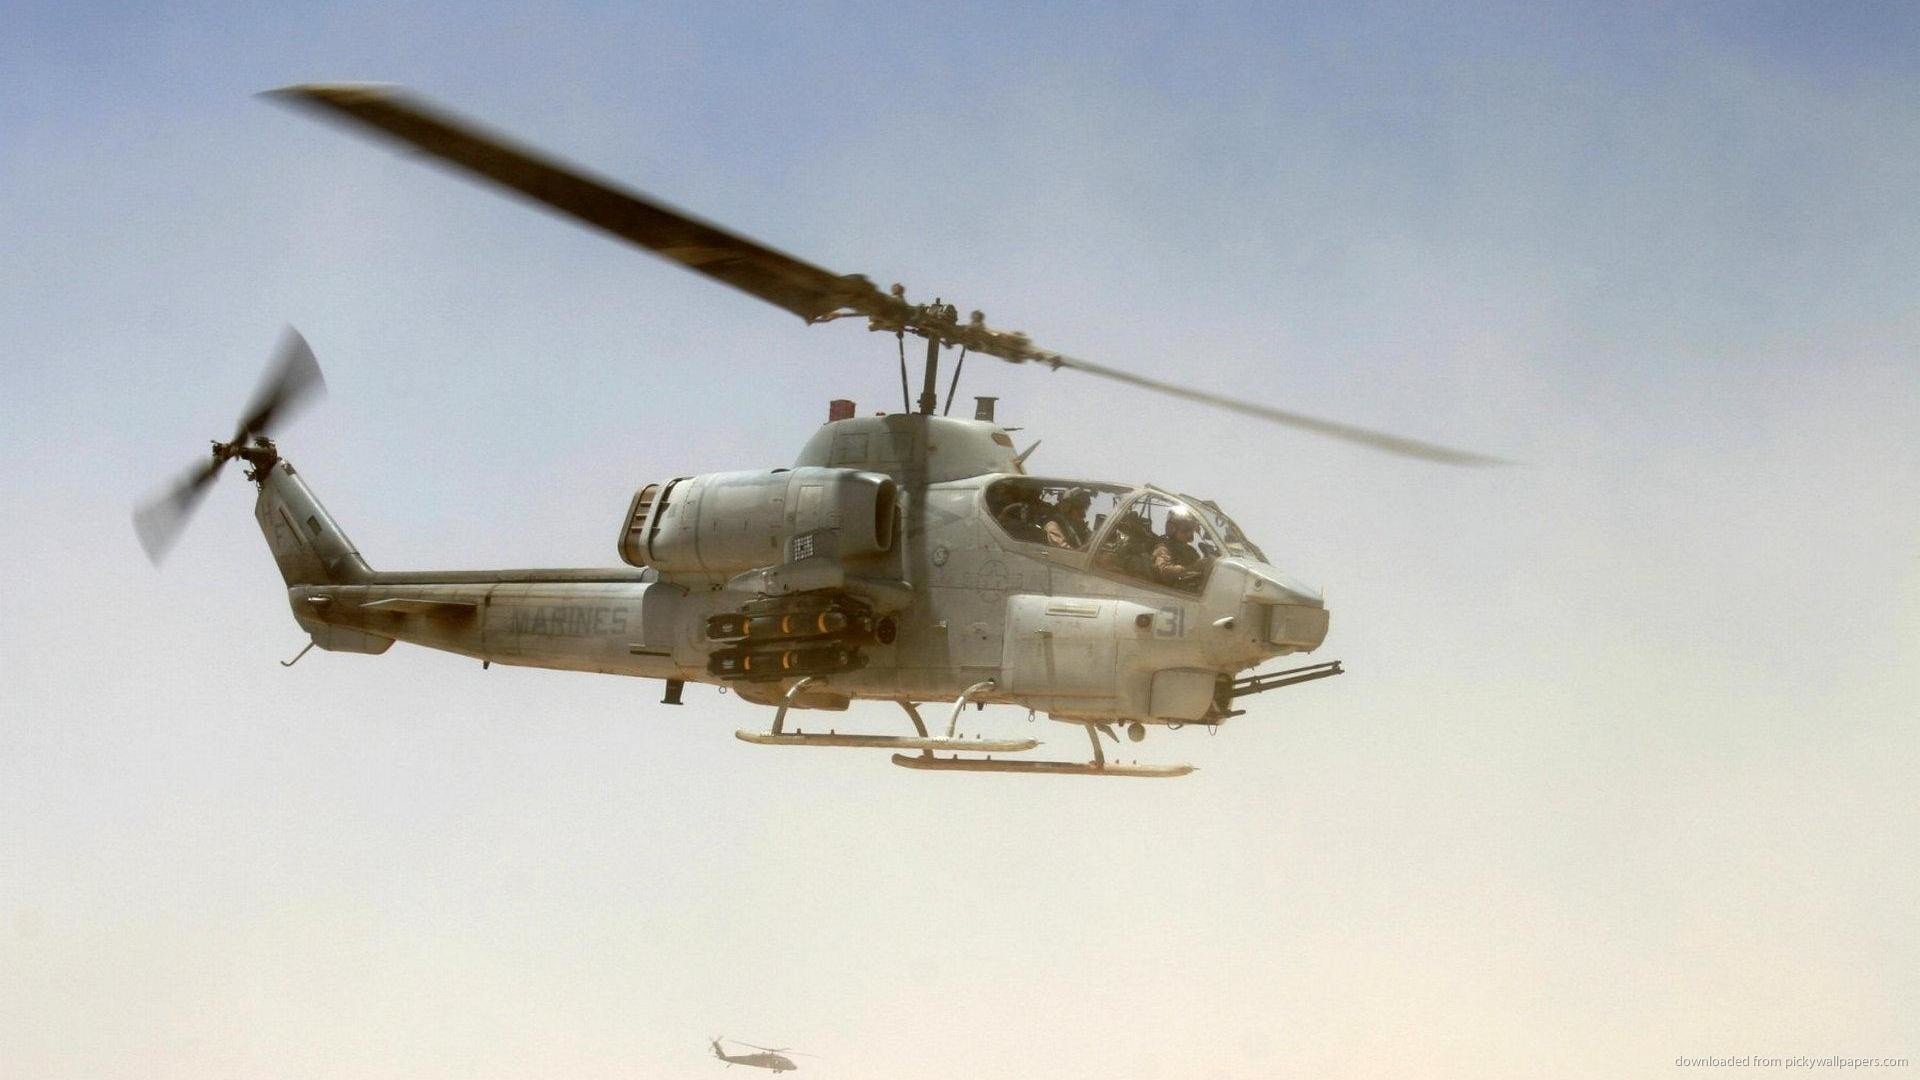 1920x1080 US Marines Helicopter for